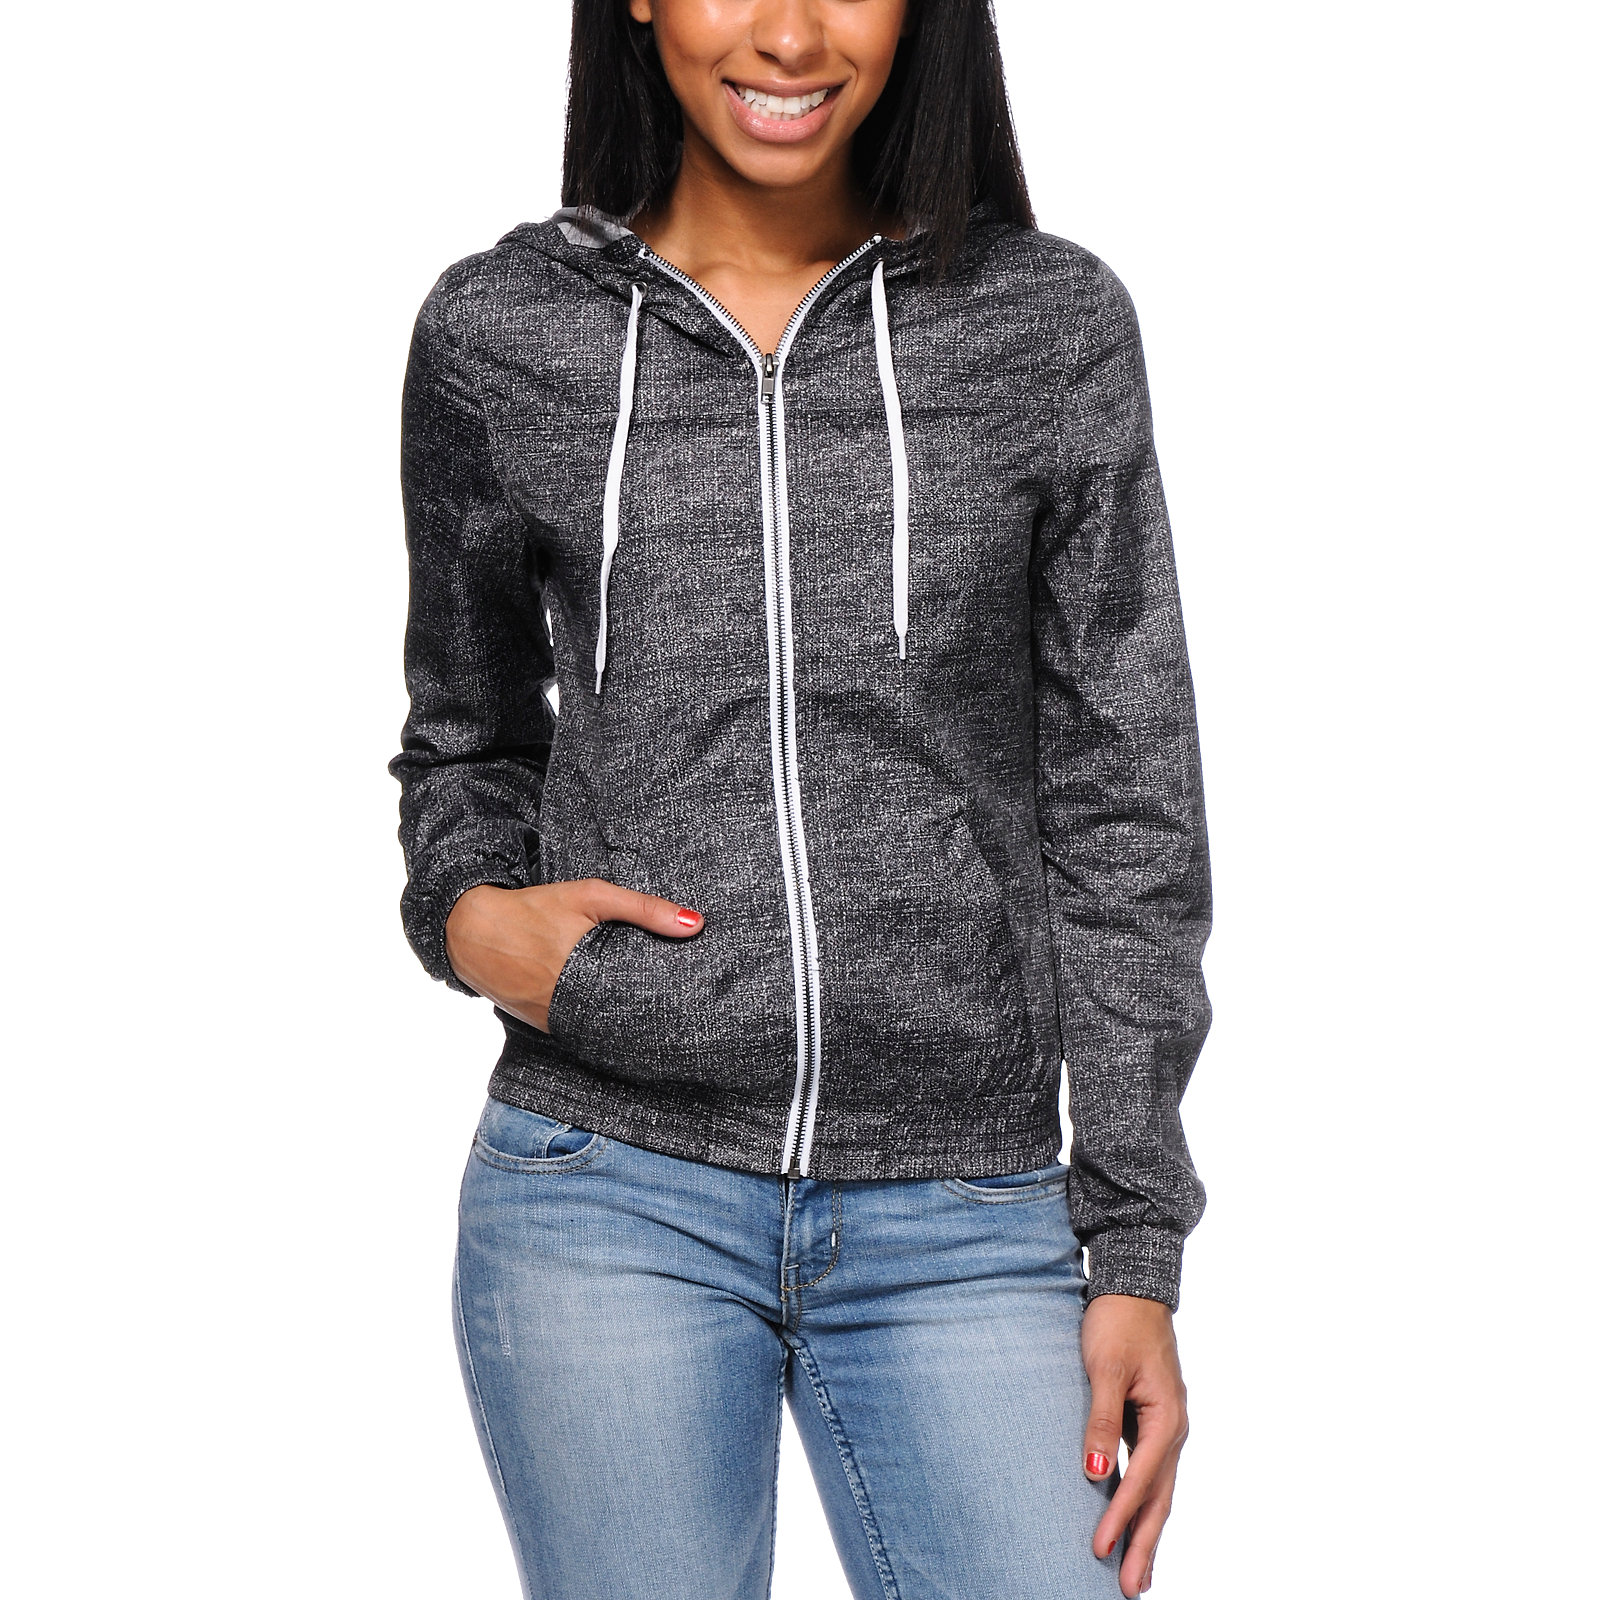 Women's Windbreakers. Shop women's windbreakers at Zumiez, carrying women's windbreakers from brands like Empyre, Obey, Zine and Dravus. Free shipping to any Zumiez store.